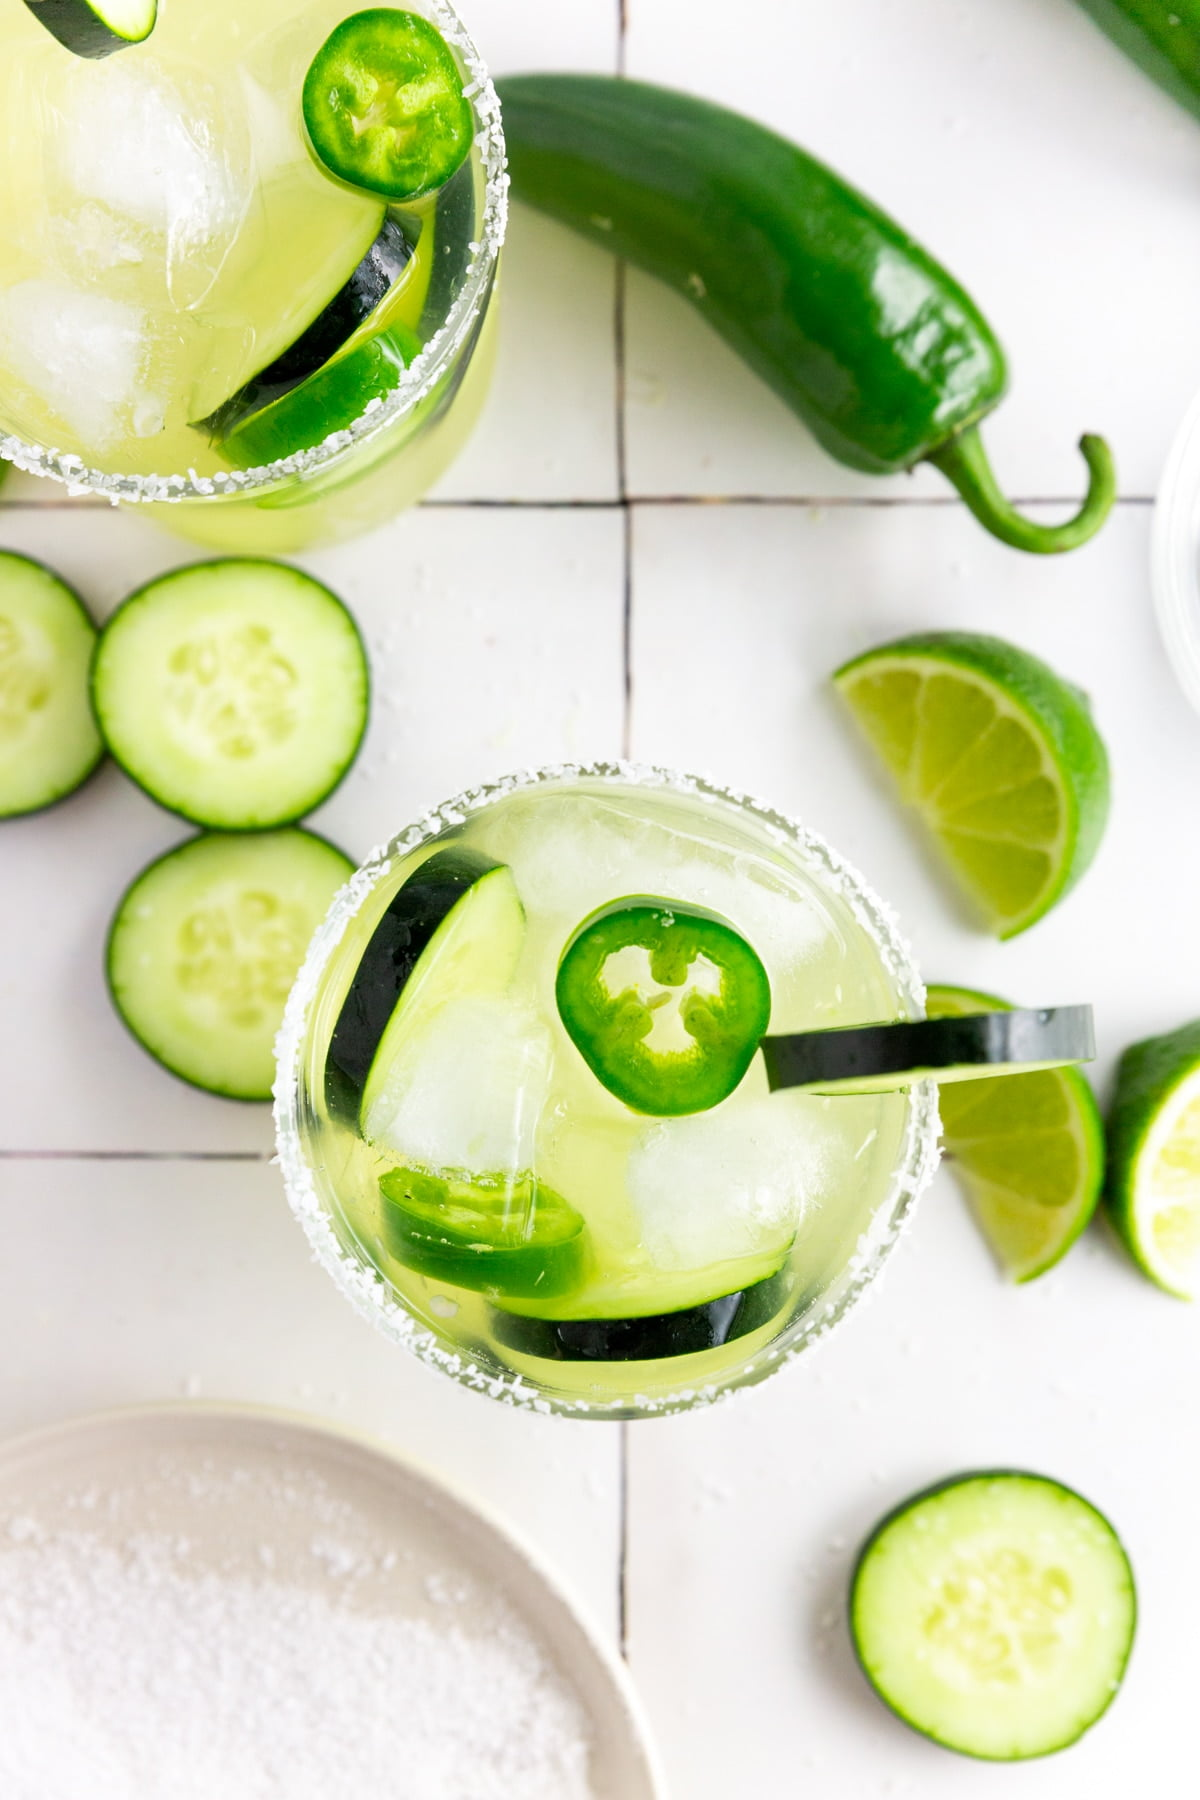 An overhead photo of two margarita glasses filled with jalapeño cucumber margaritas with sliced jalapeño and cucumbers in it and lime wedges on a table.